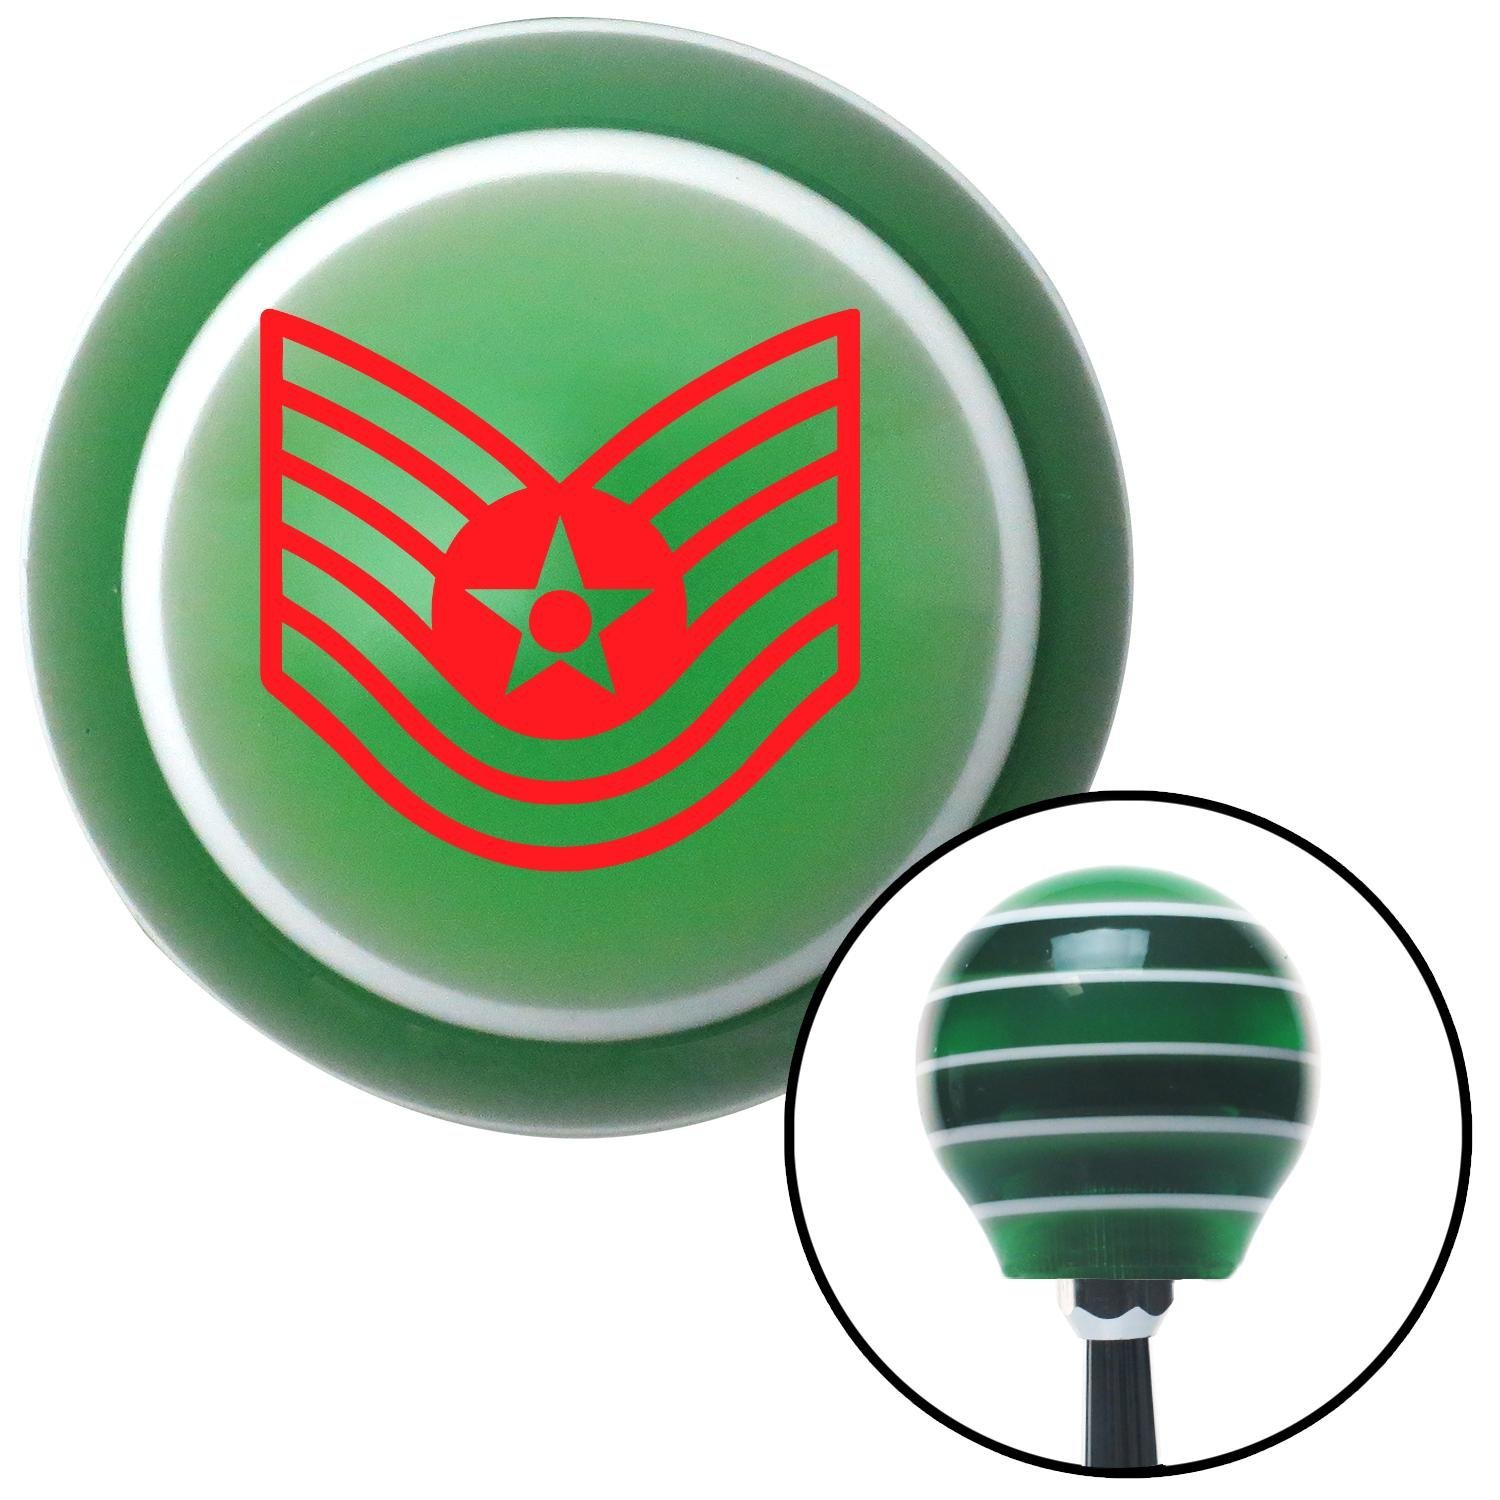 American Shifter 124640 Green Stripe Shift Knob with M16 x 1.5 Insert Red Technical Sergeant